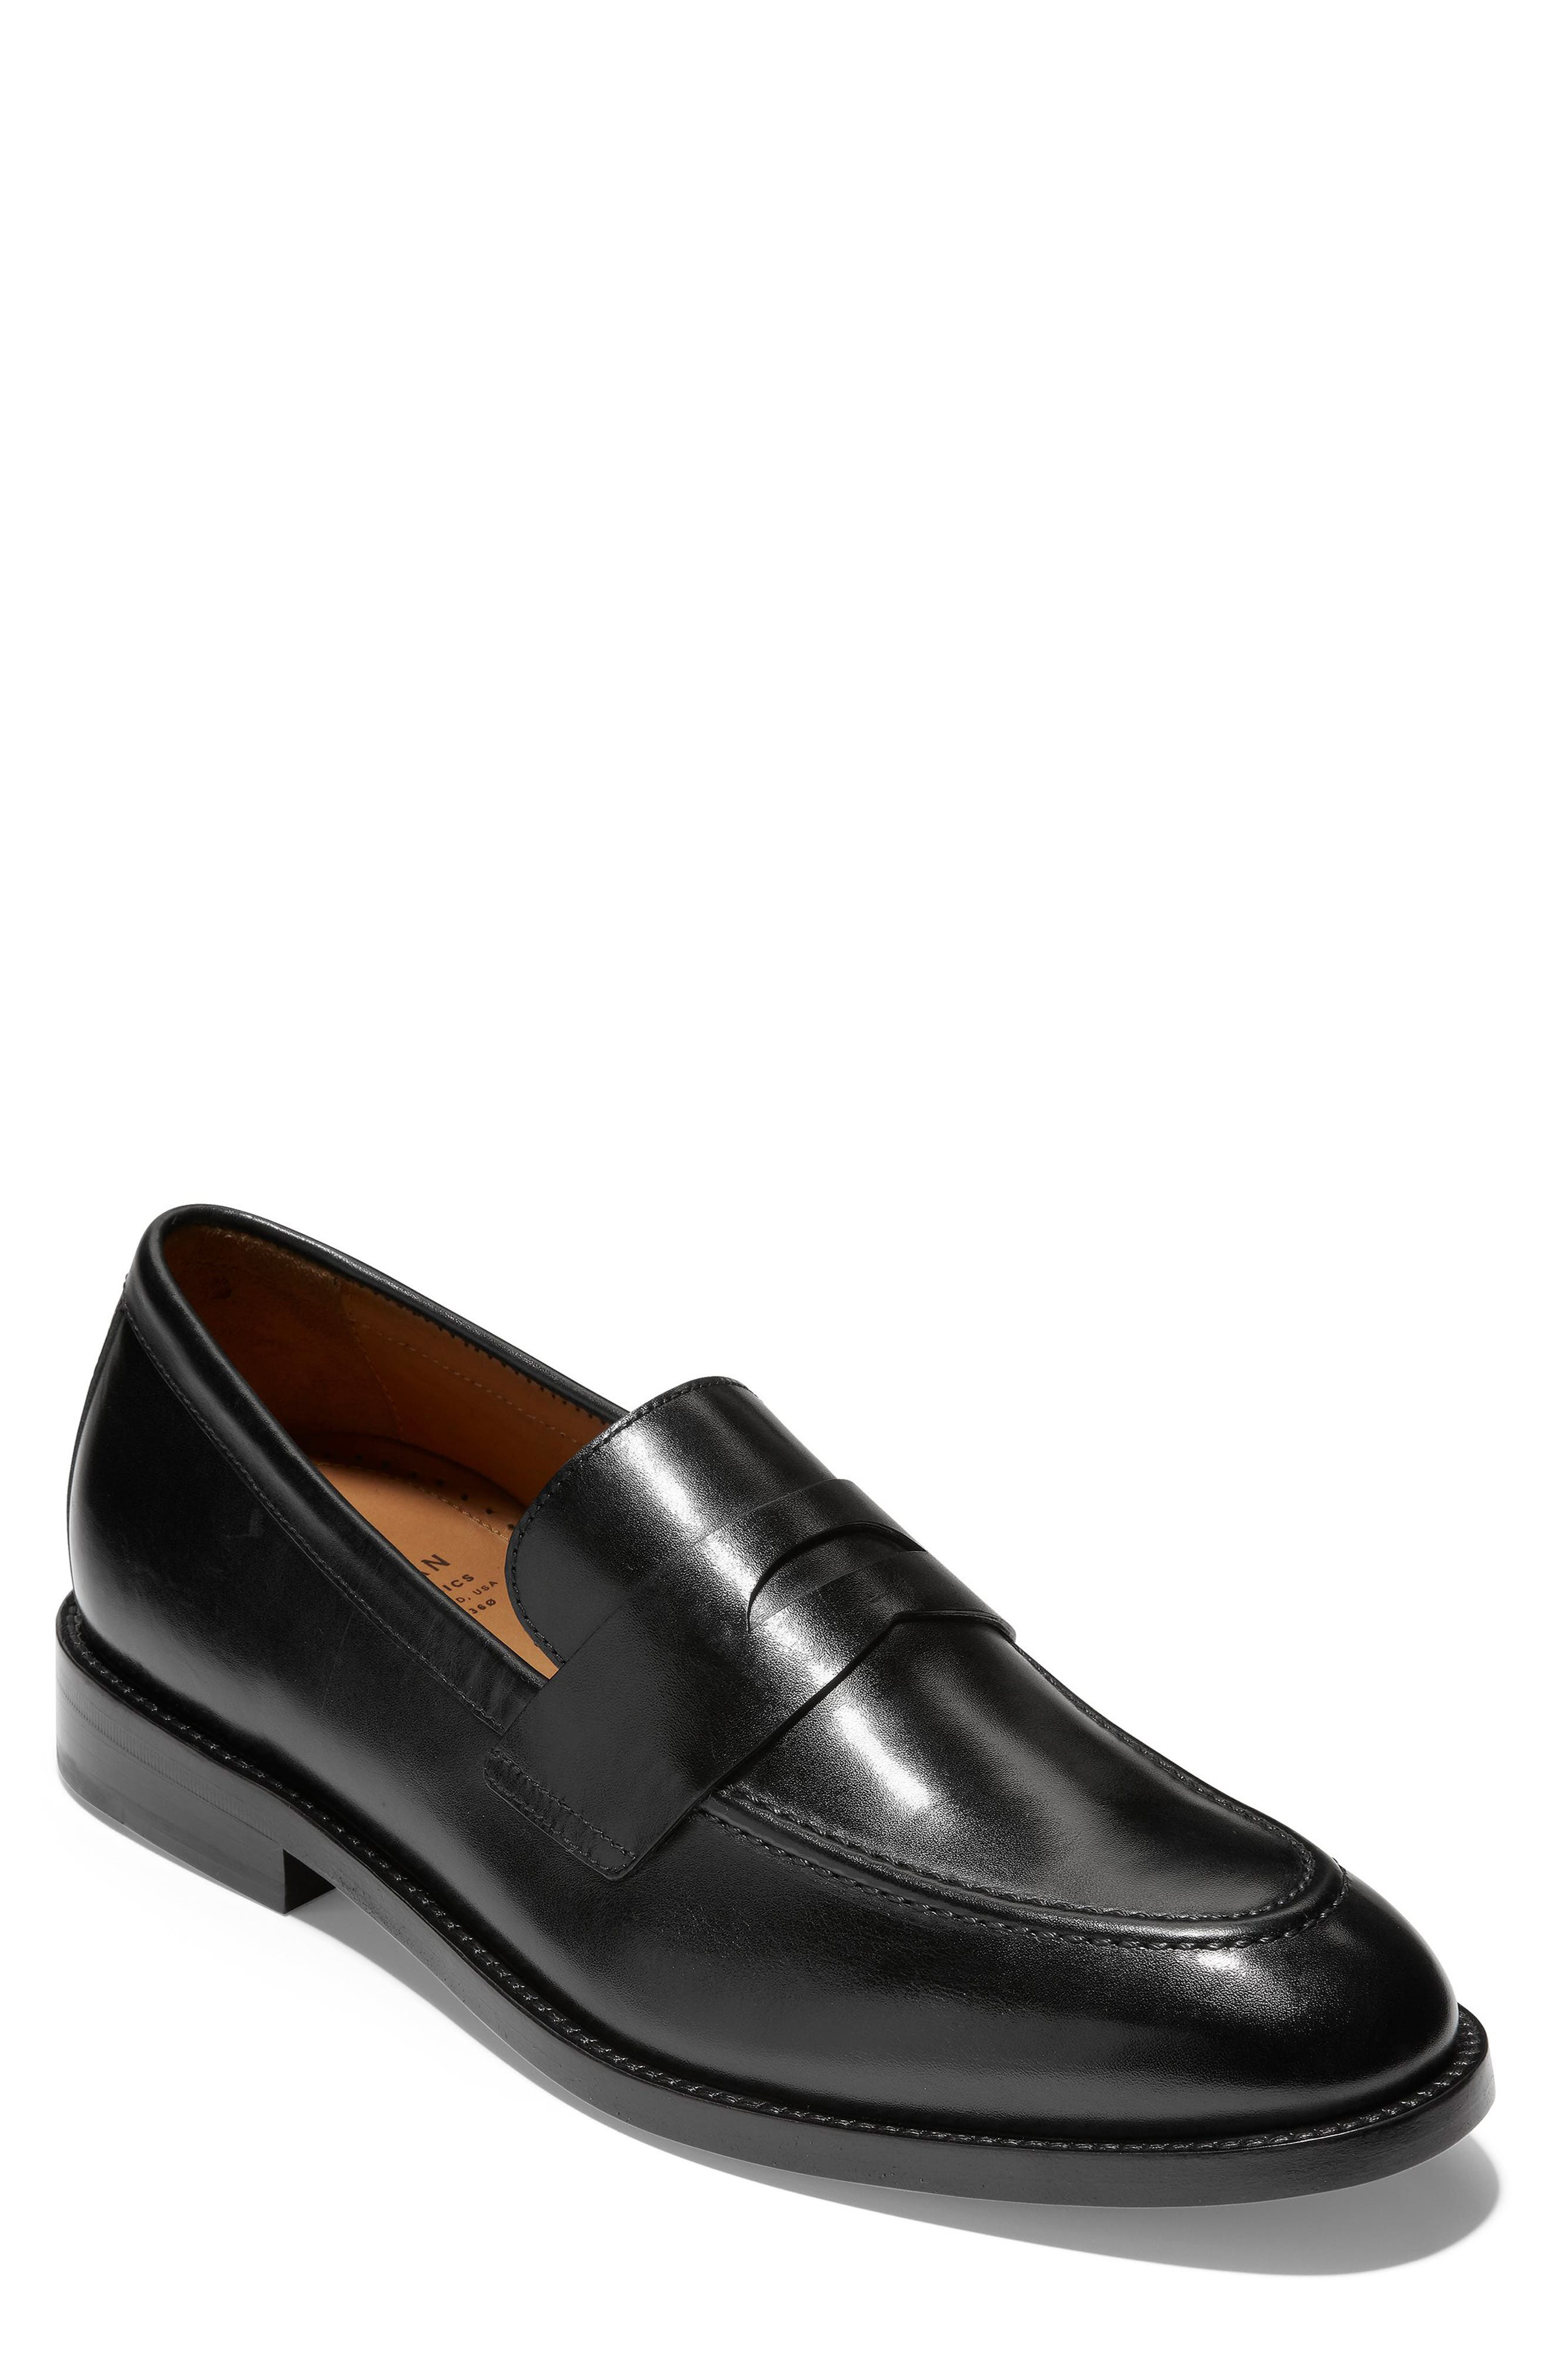 COLE HAAN American Classics Kneeland Penny Loafer, Main, color, BLACK LEATHER